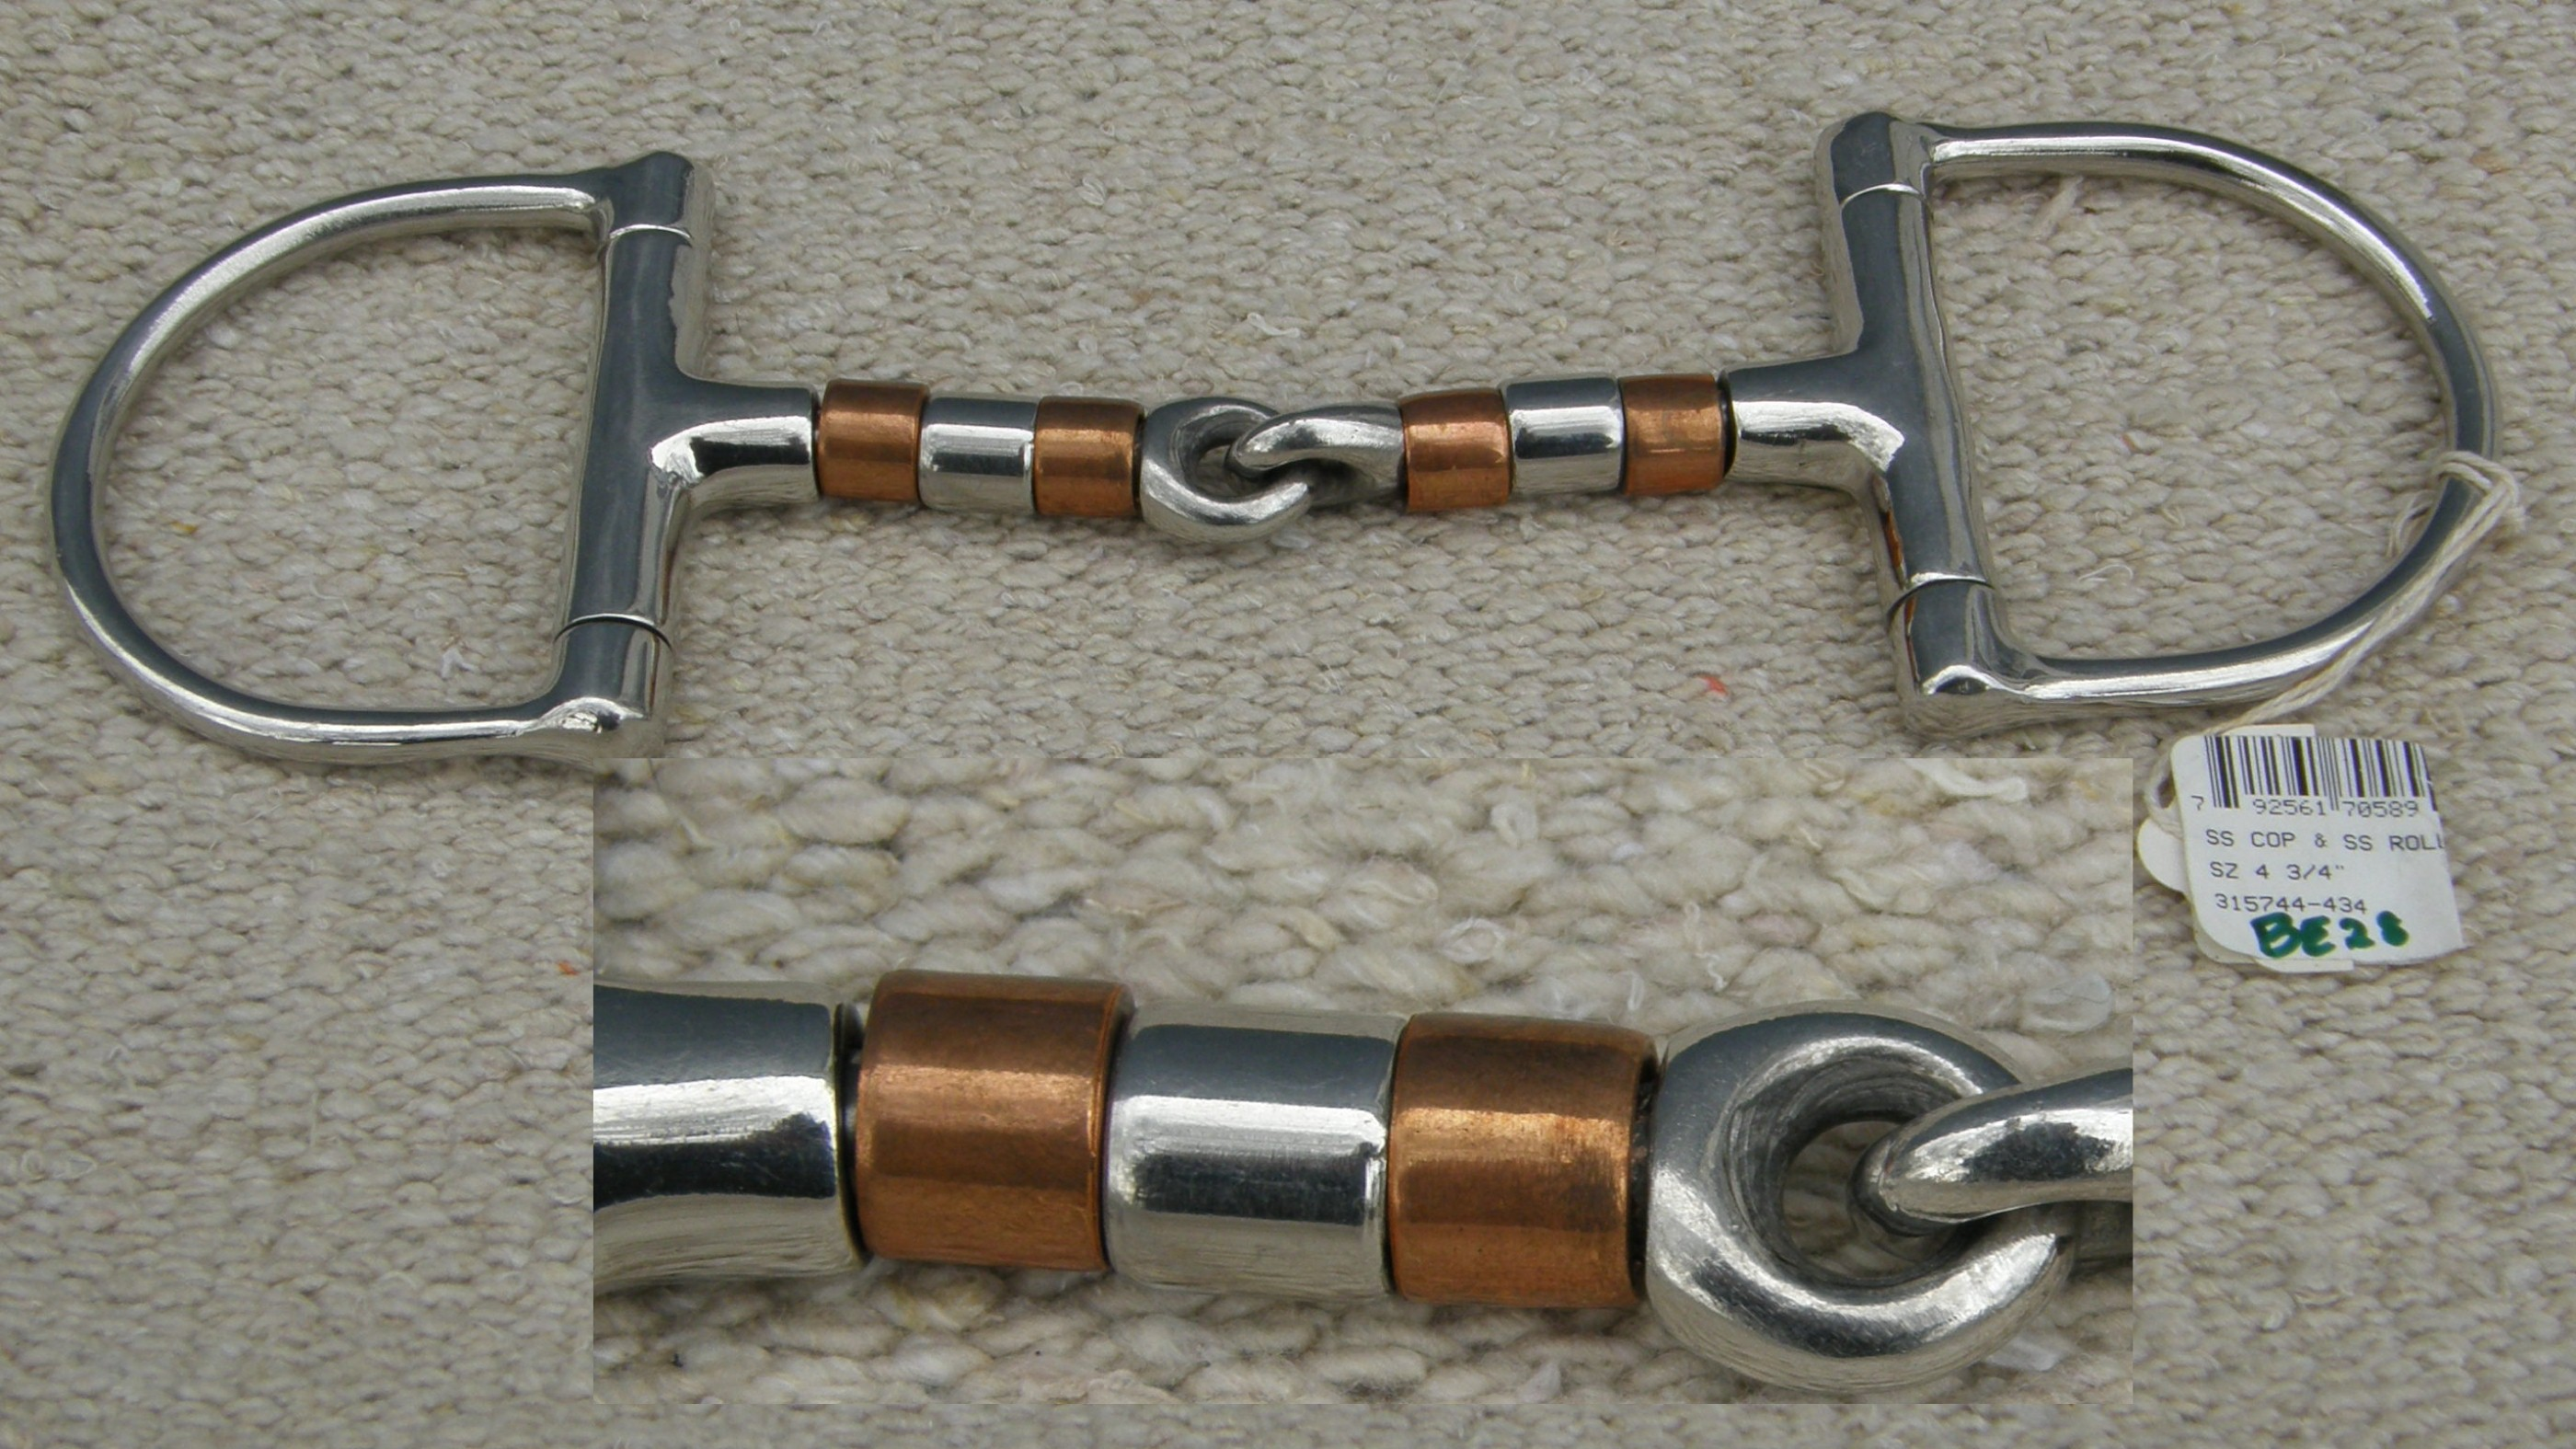 Stainless Steel Copper Mouth English or Western D-Ring Dee Ring Snaffle Bit